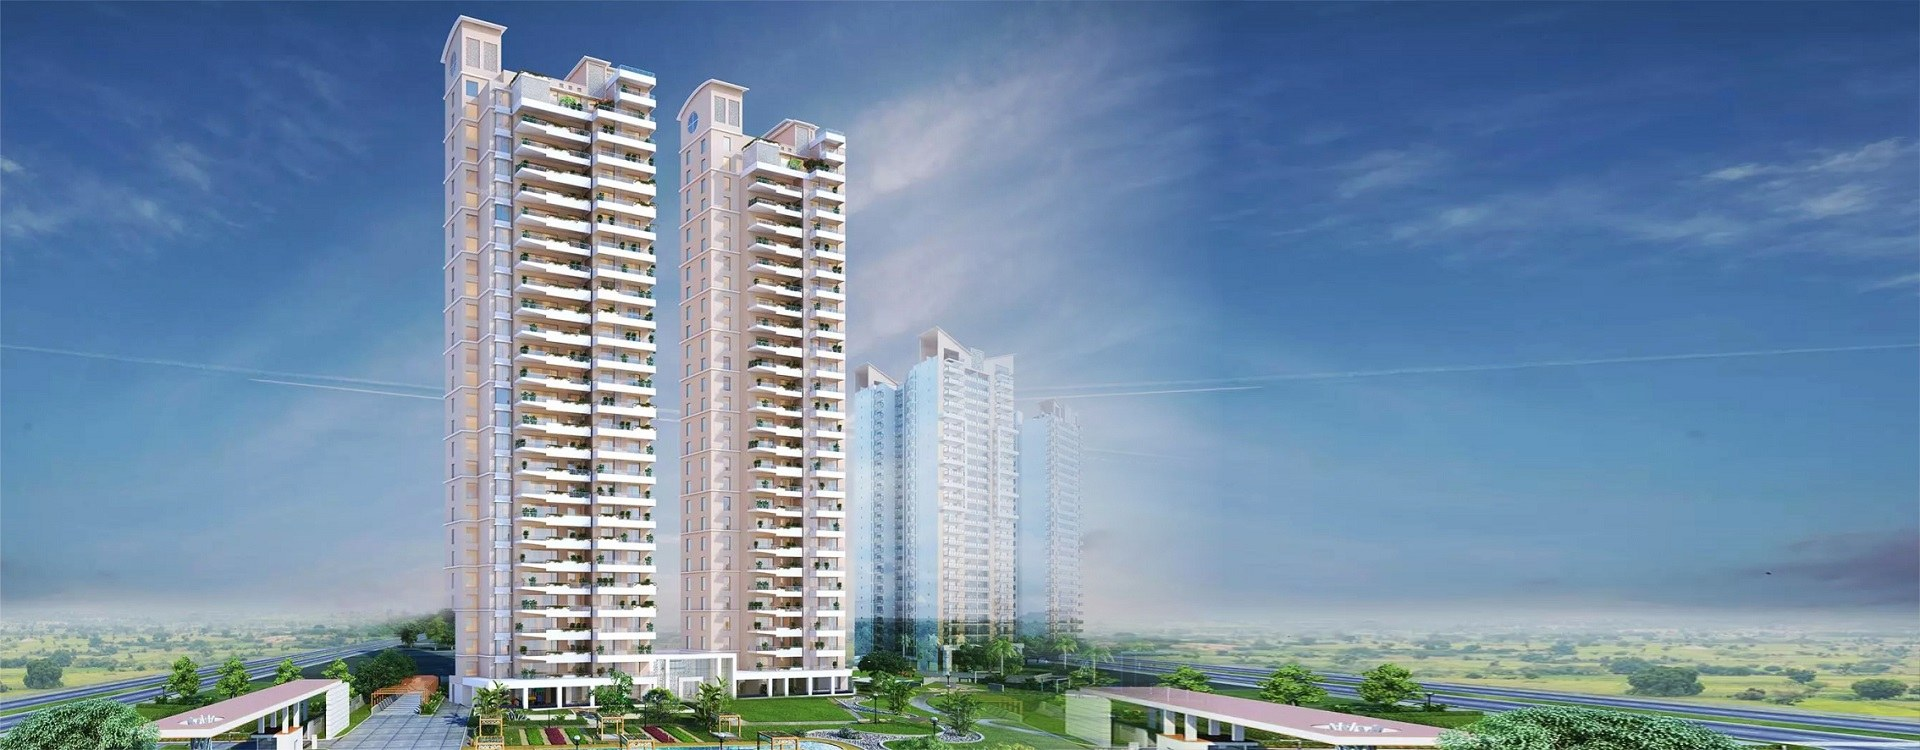 /4 BHK Flats in Noida -Gaur Platinum Towers